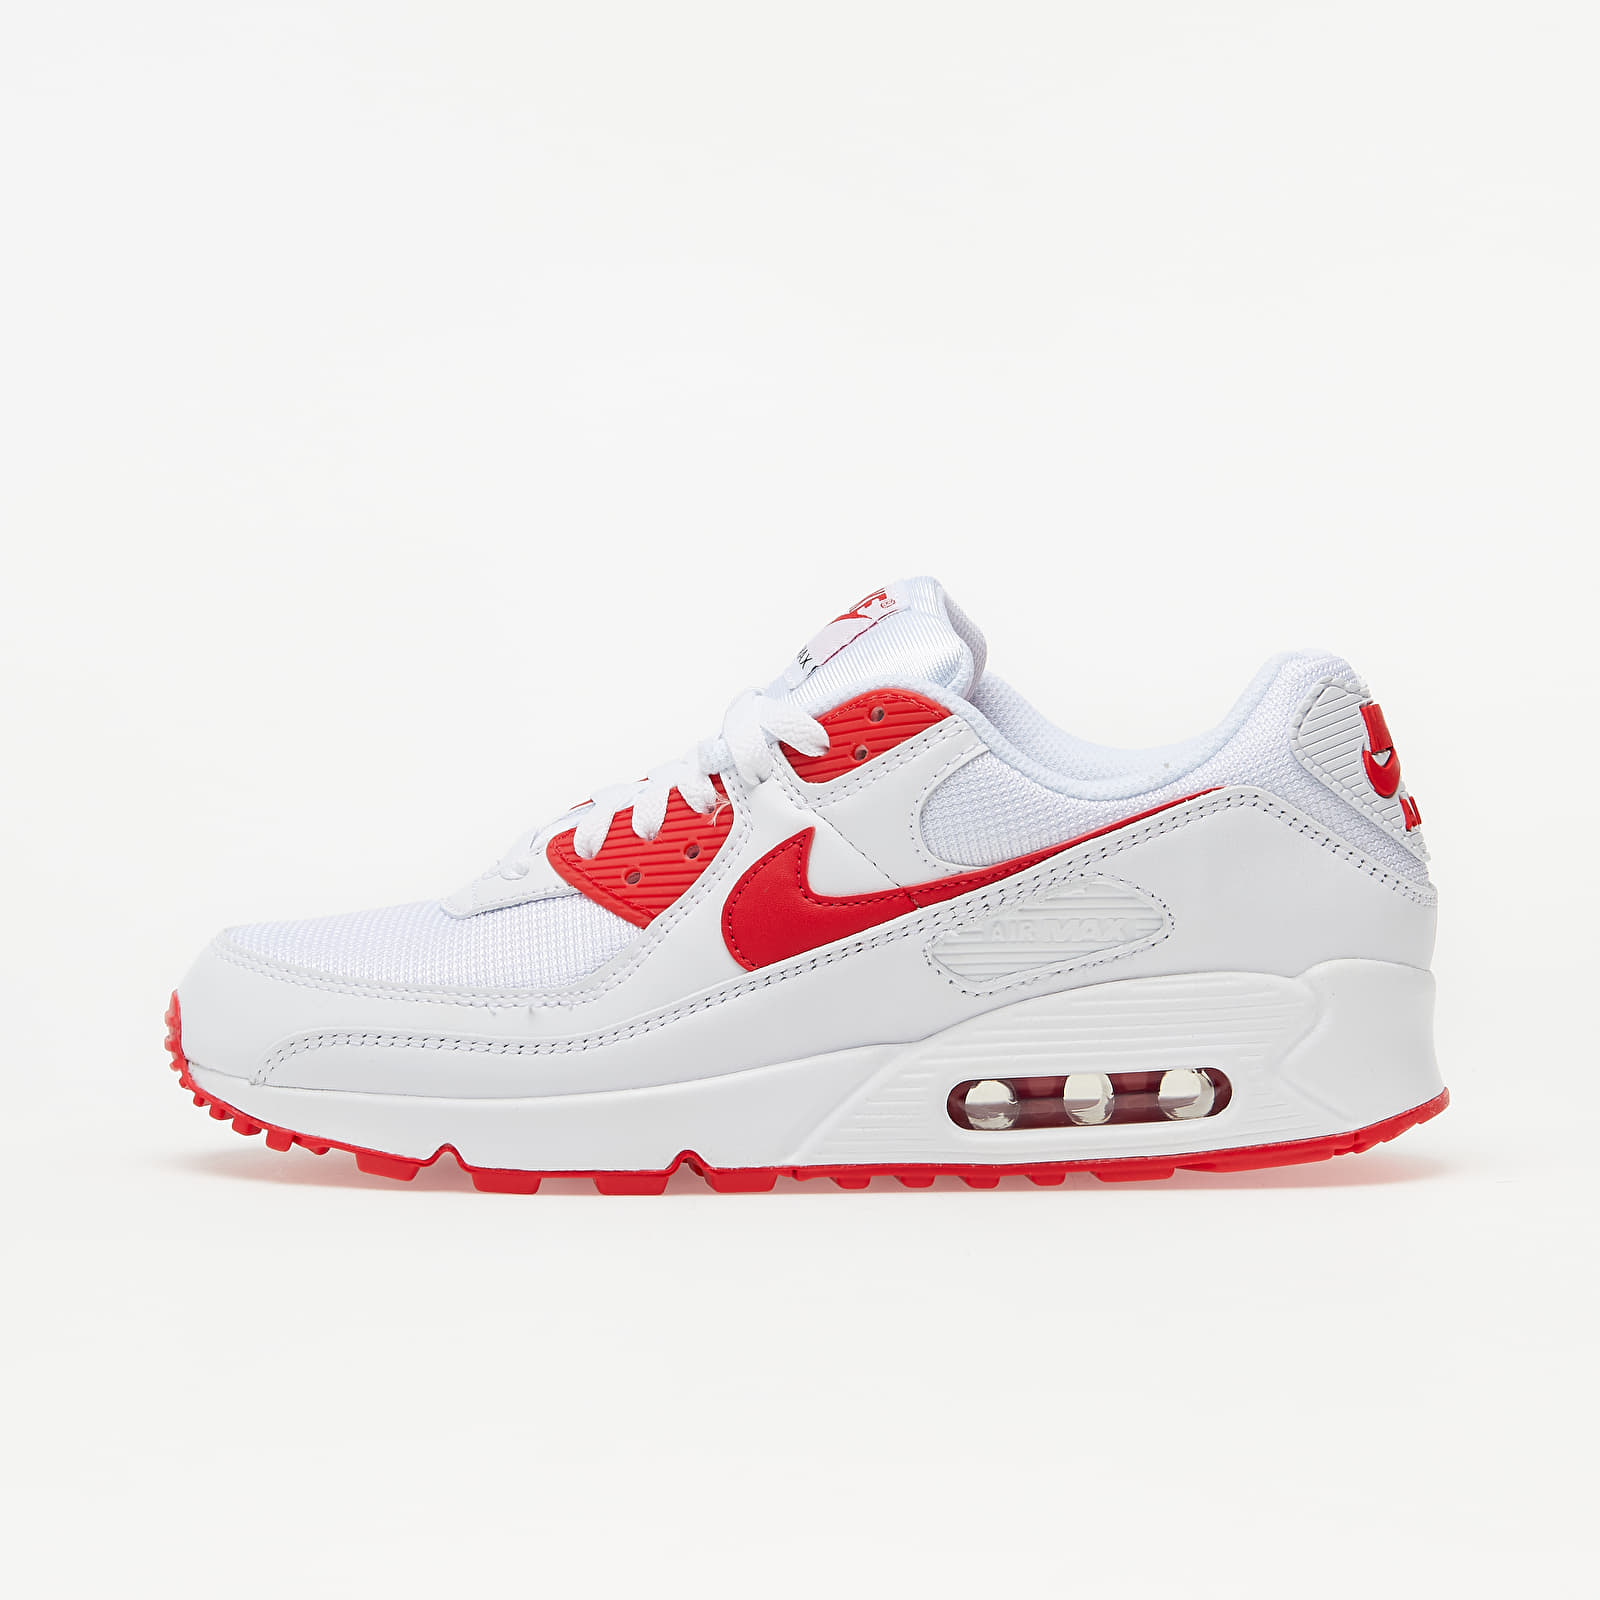 Nike Air Max 90 White/ Hyper Red-Black EUR 45